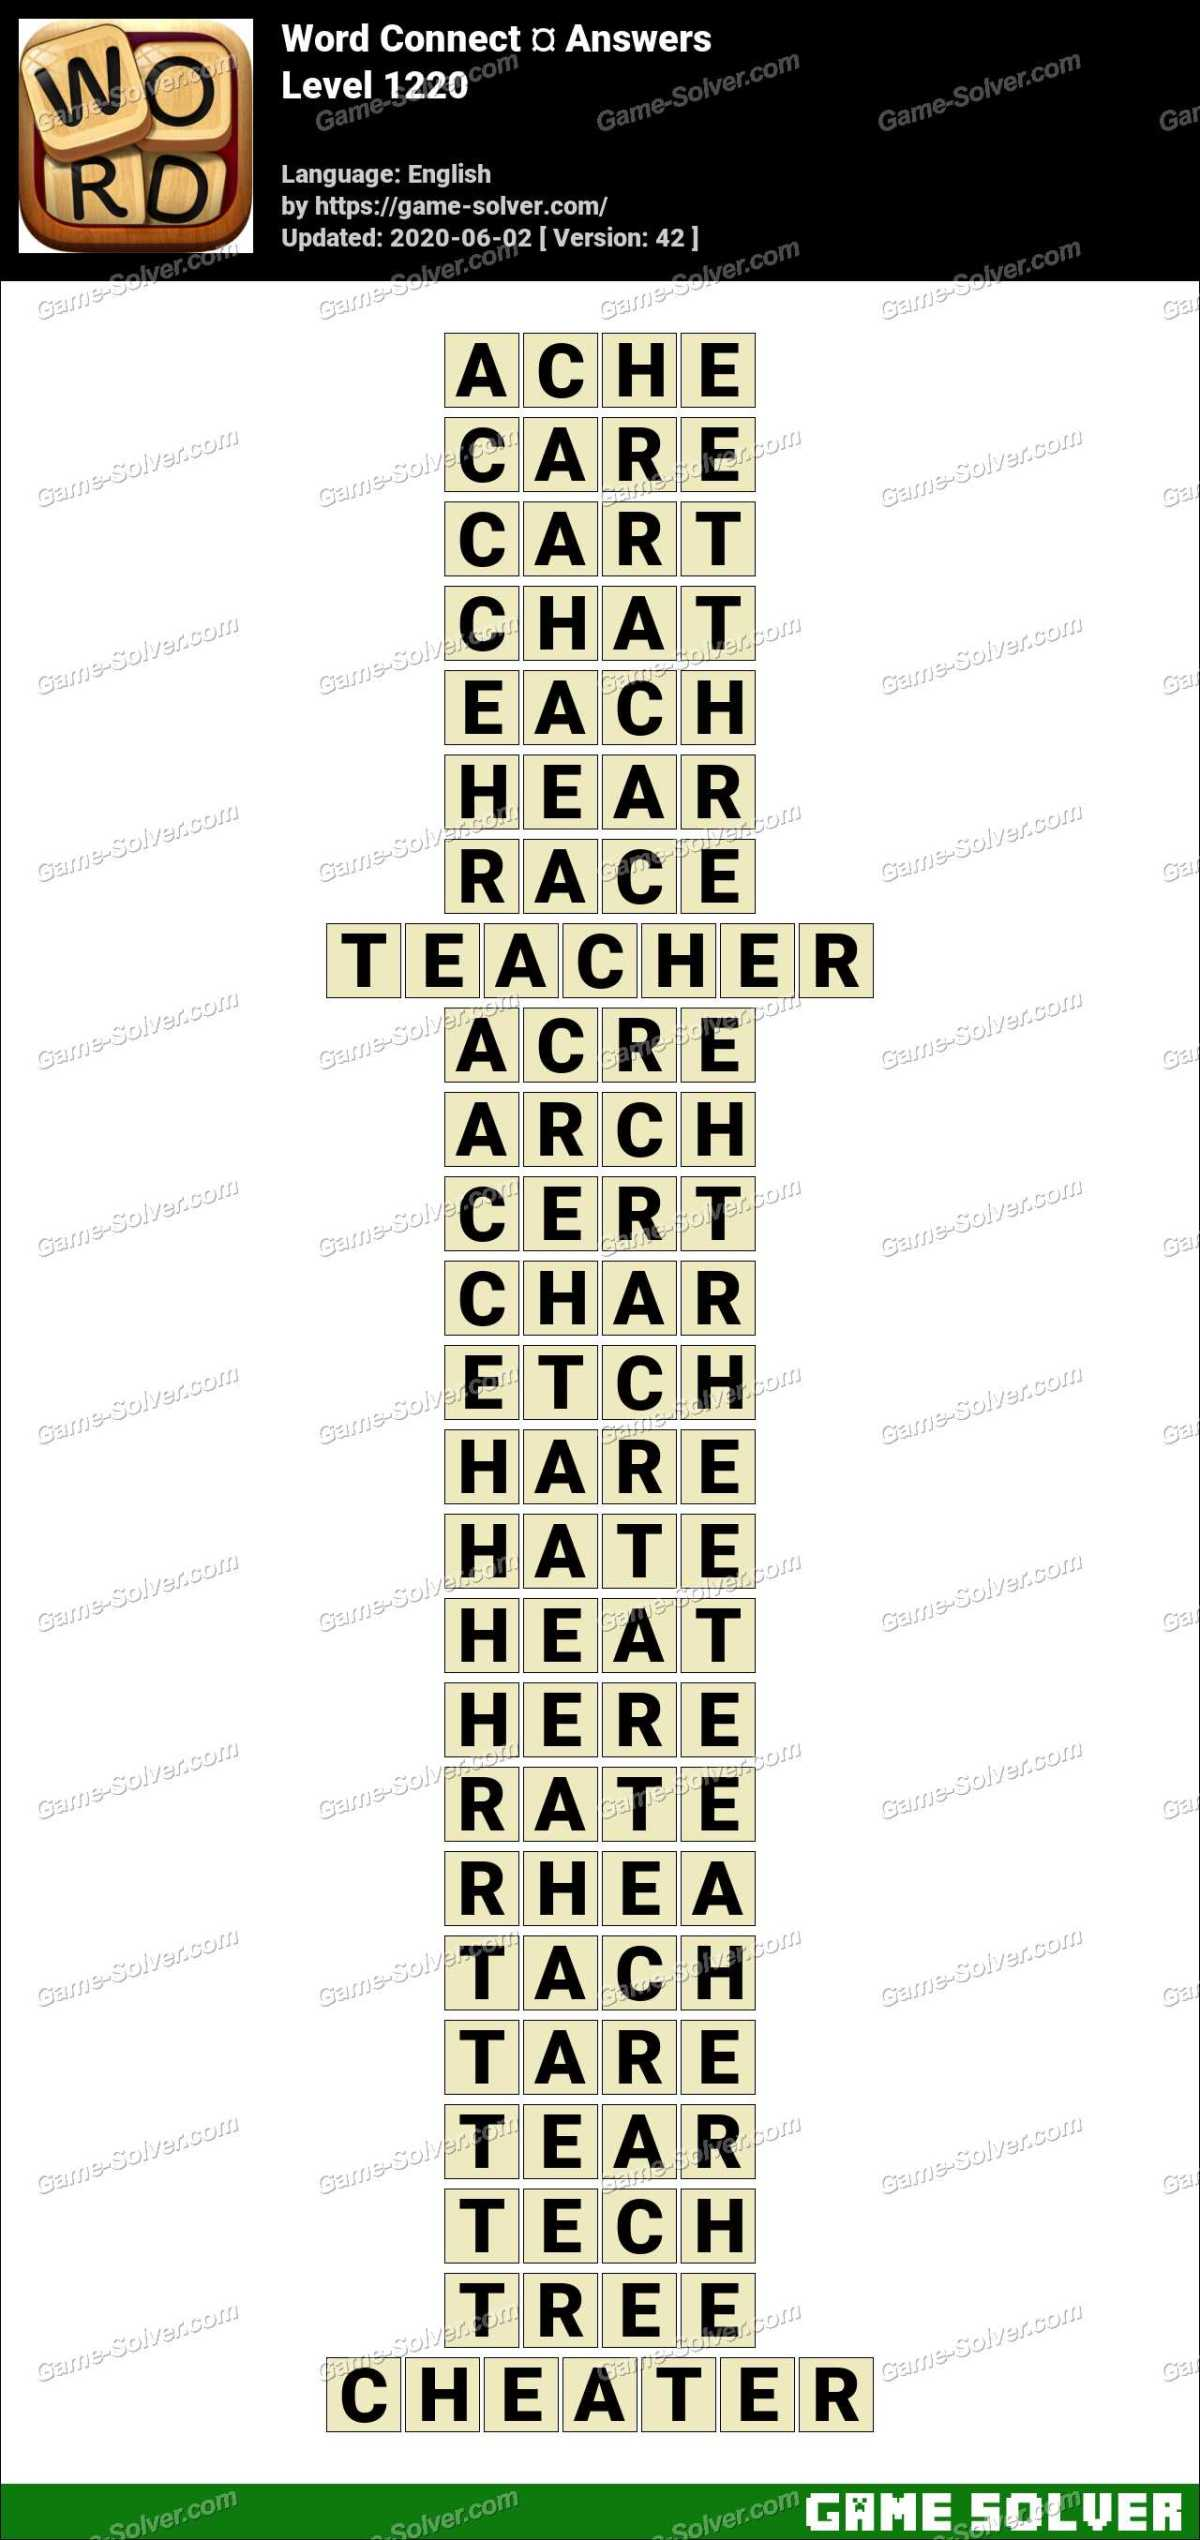 Word Connect Level 1220 Answers